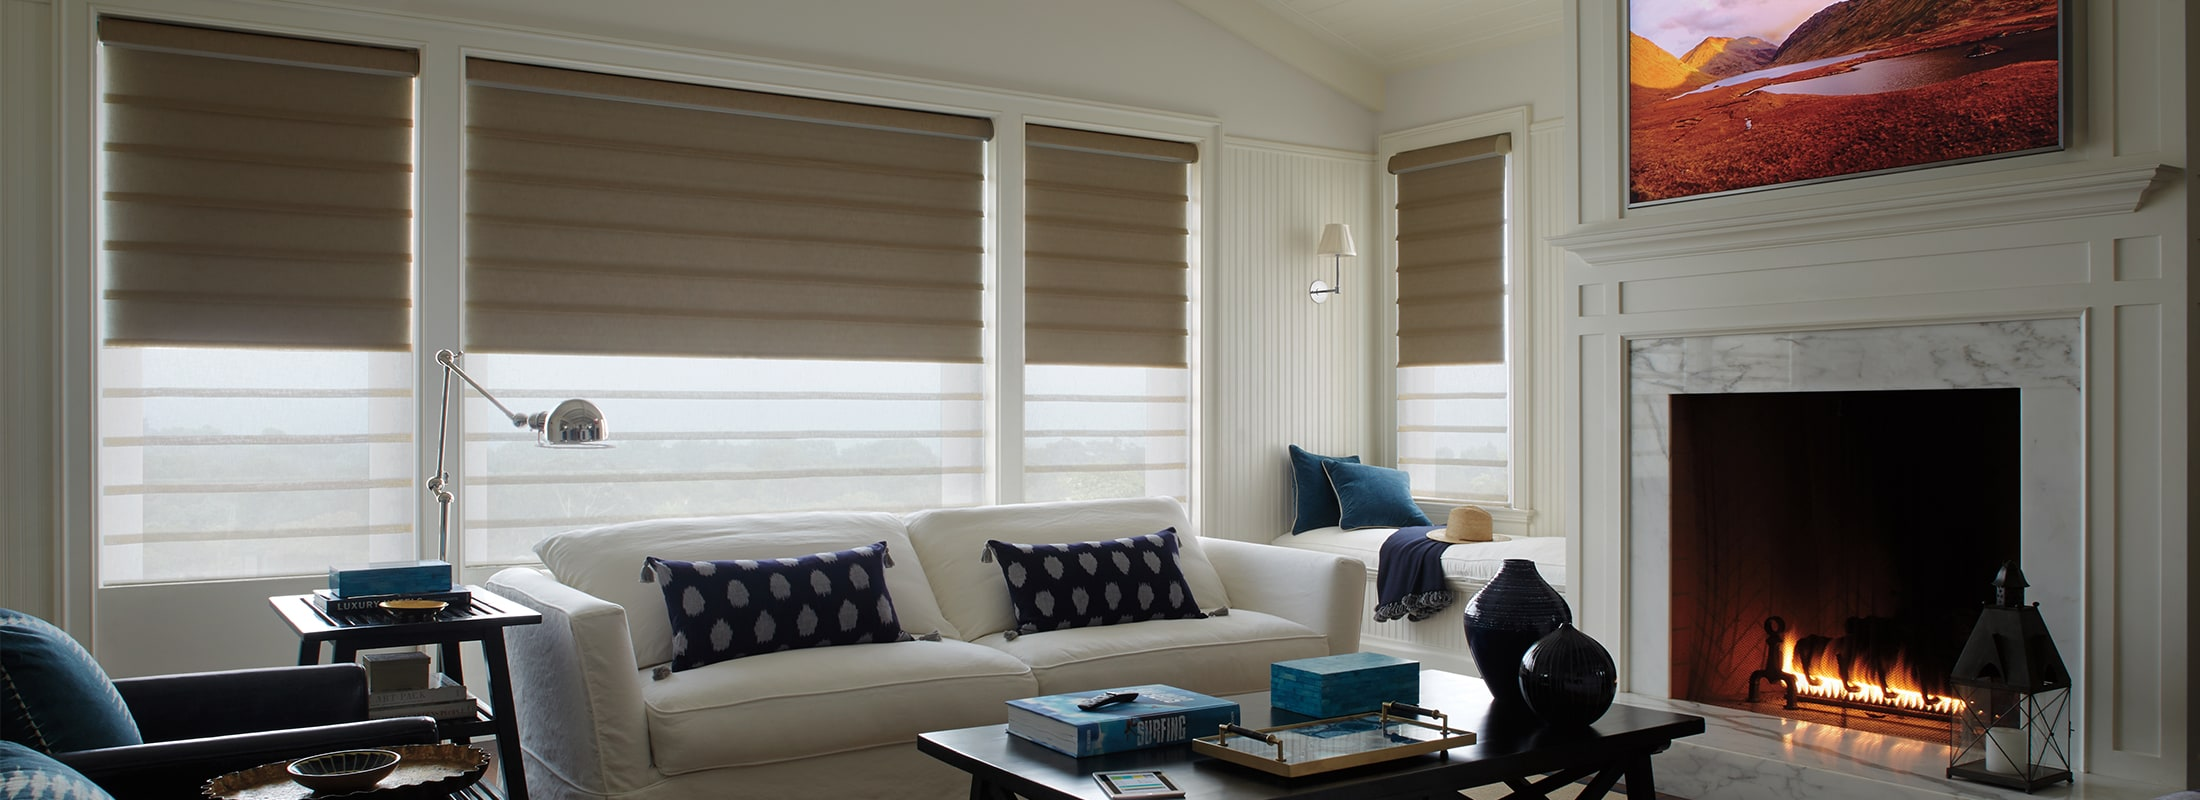 modern-roman-shades-vignette-in-leela-escape